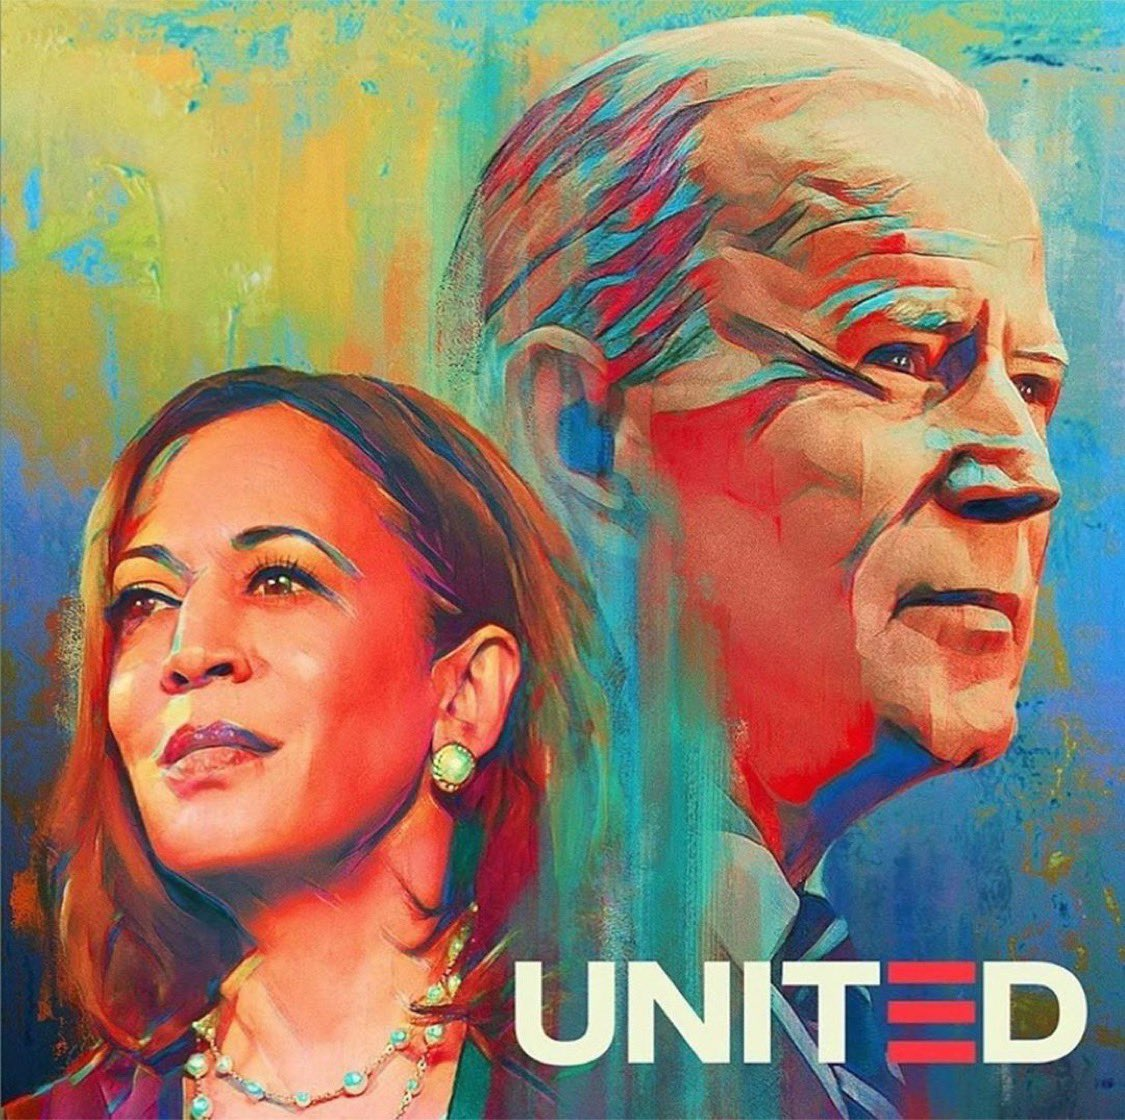 I am just so overcome with Joy. My heart is so full right now, bursting really.  History was made. We did this. We showed up and WE DID IT!!!!!!!!! #BidenHarris2020